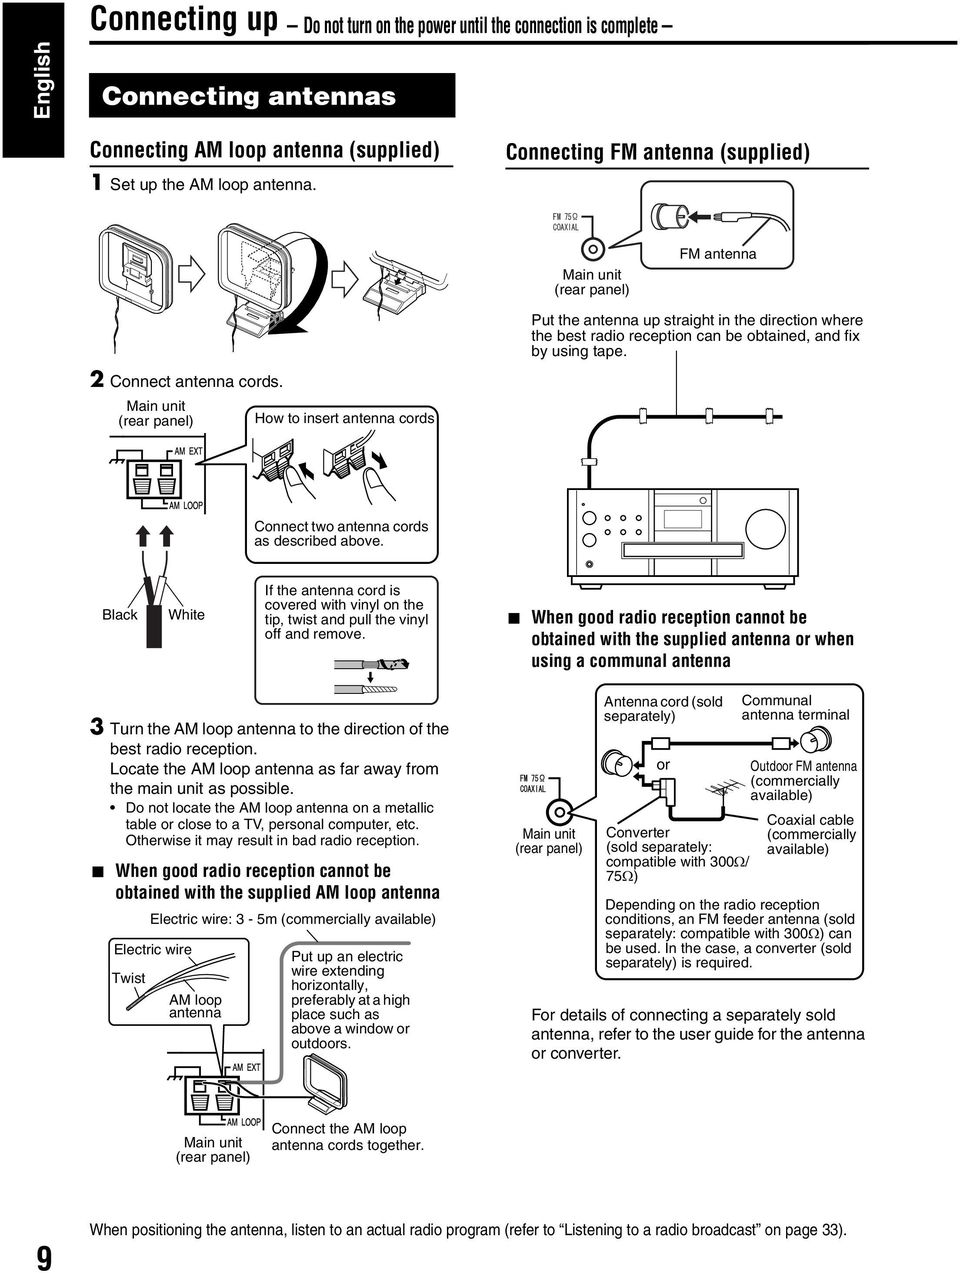 2 Connect antenna cords. Main unit (rear panel) How to insert antenna cords Connect two antenna cords as described above.